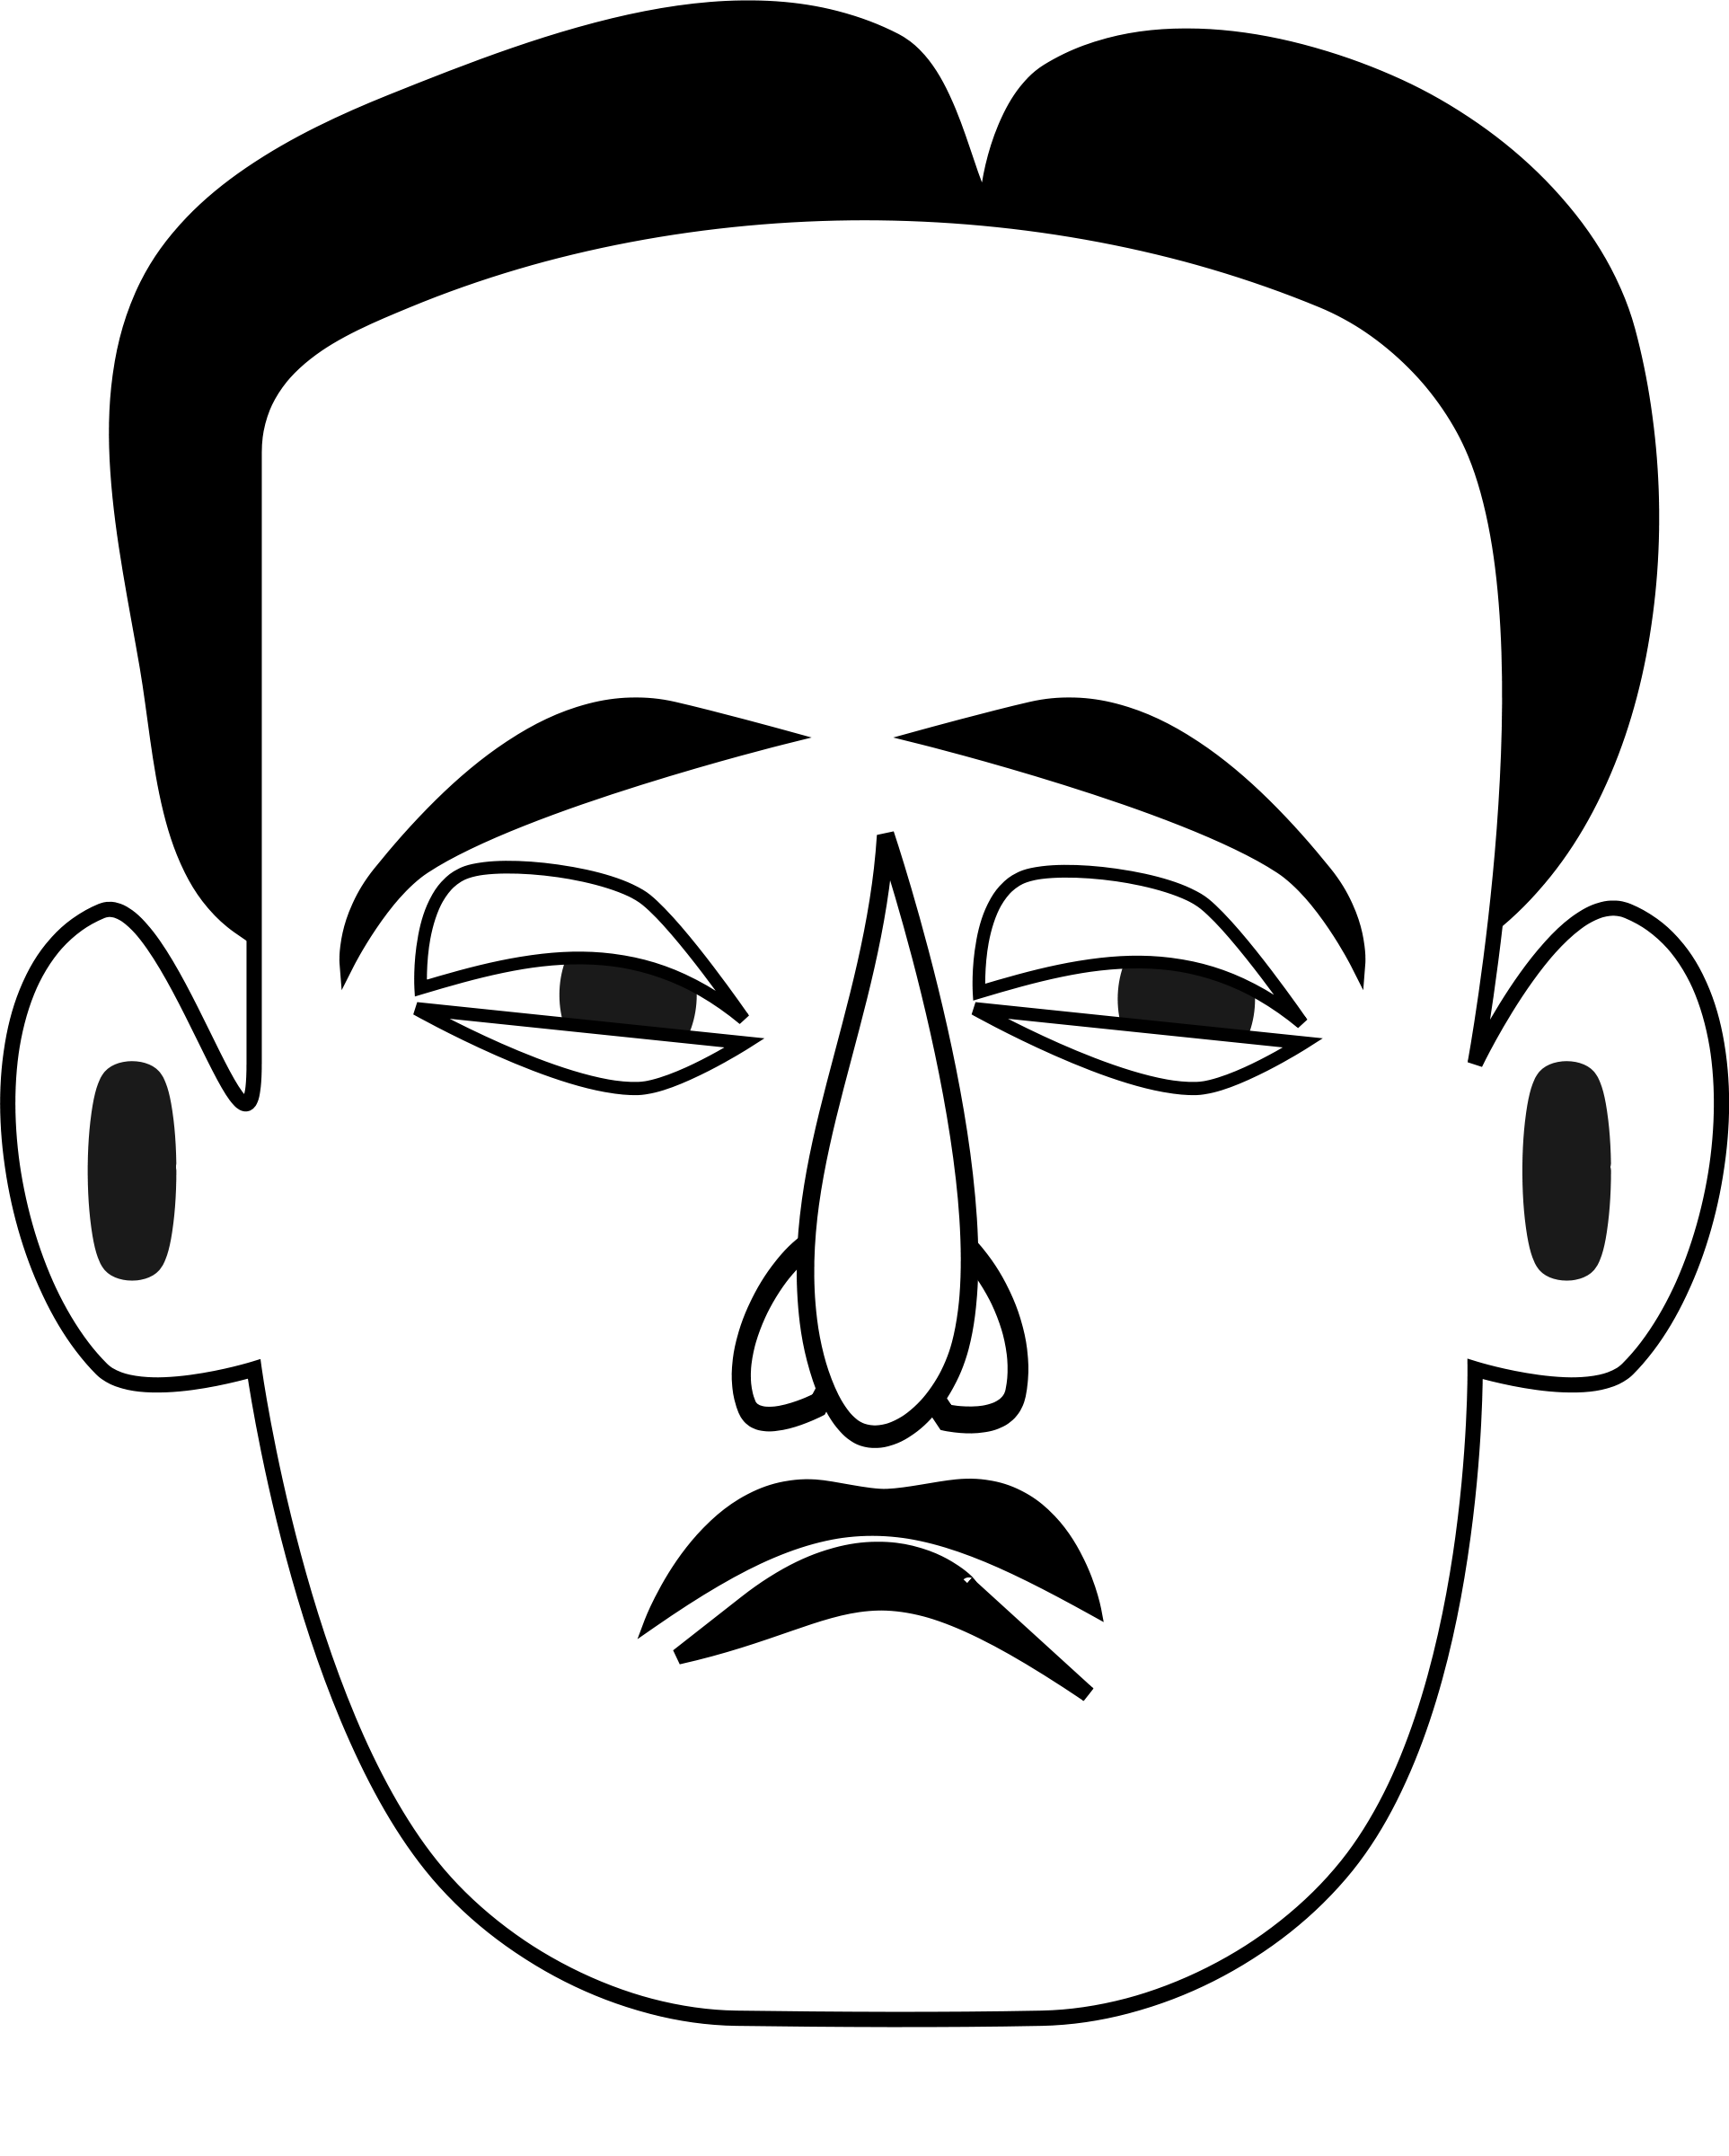 Line Drawing Sad Face : Sad face line drawing clipart best